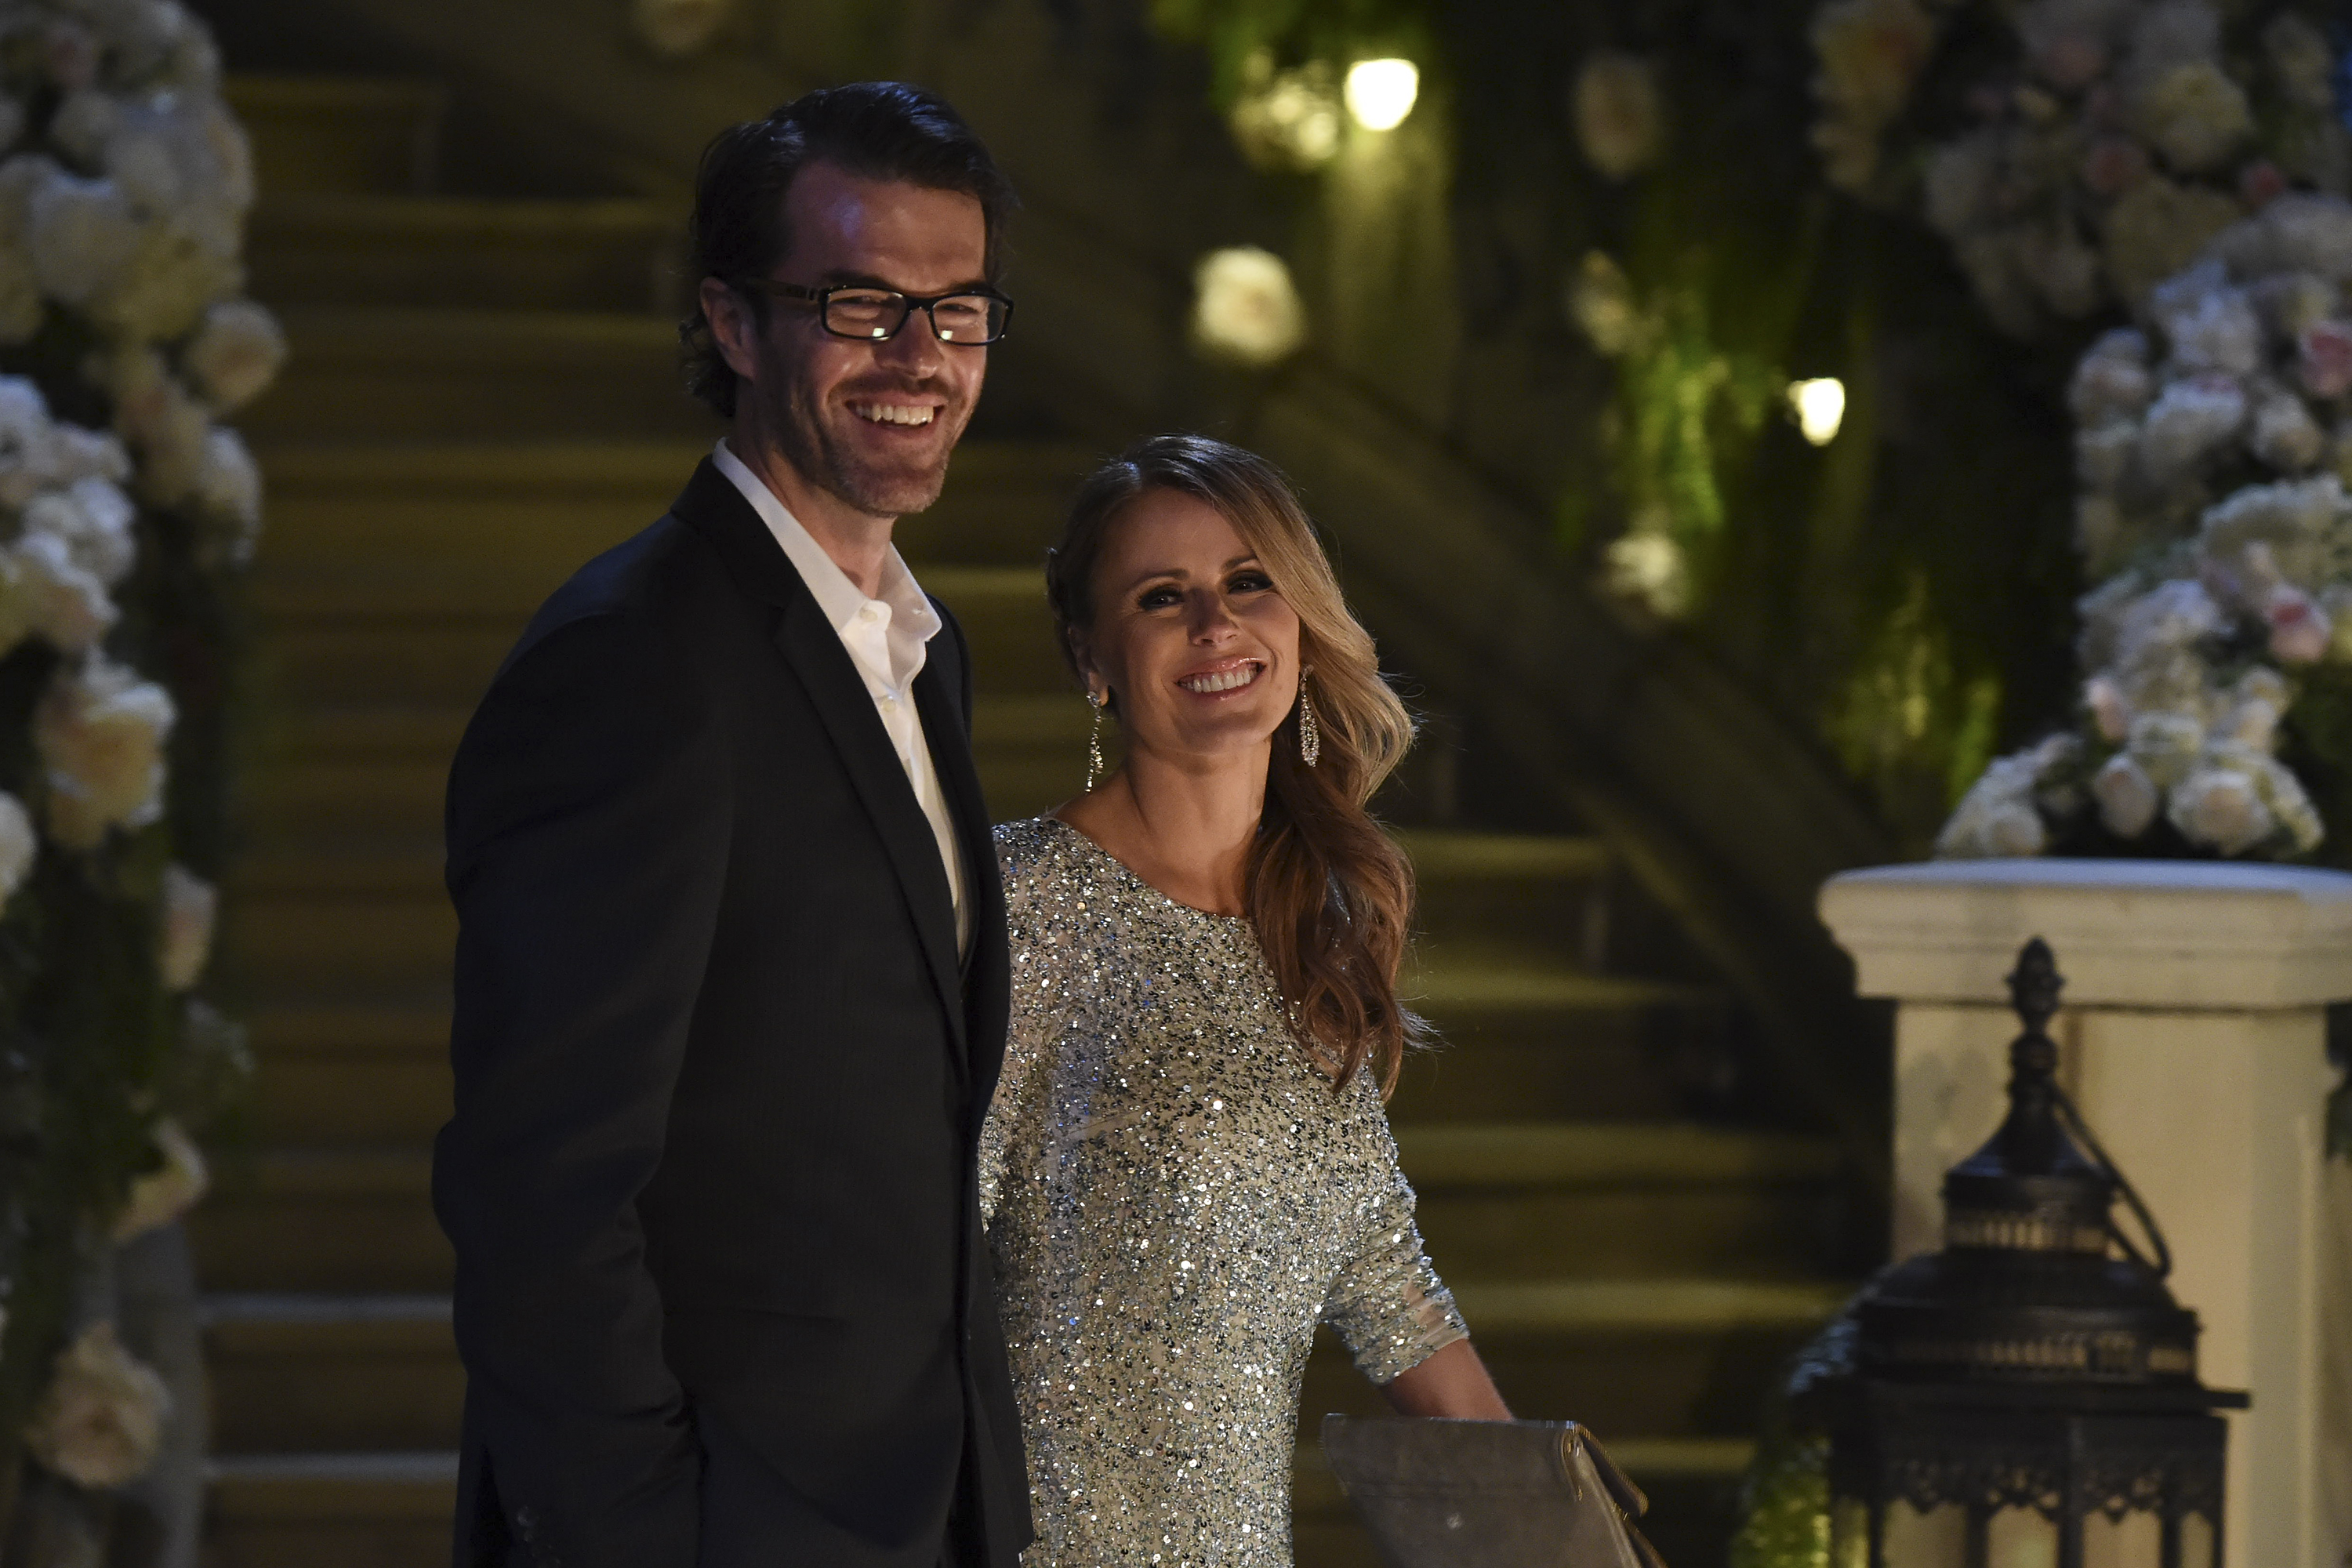 The Bachelorette S Ryan Sutter On How Couples Can Be Healthy